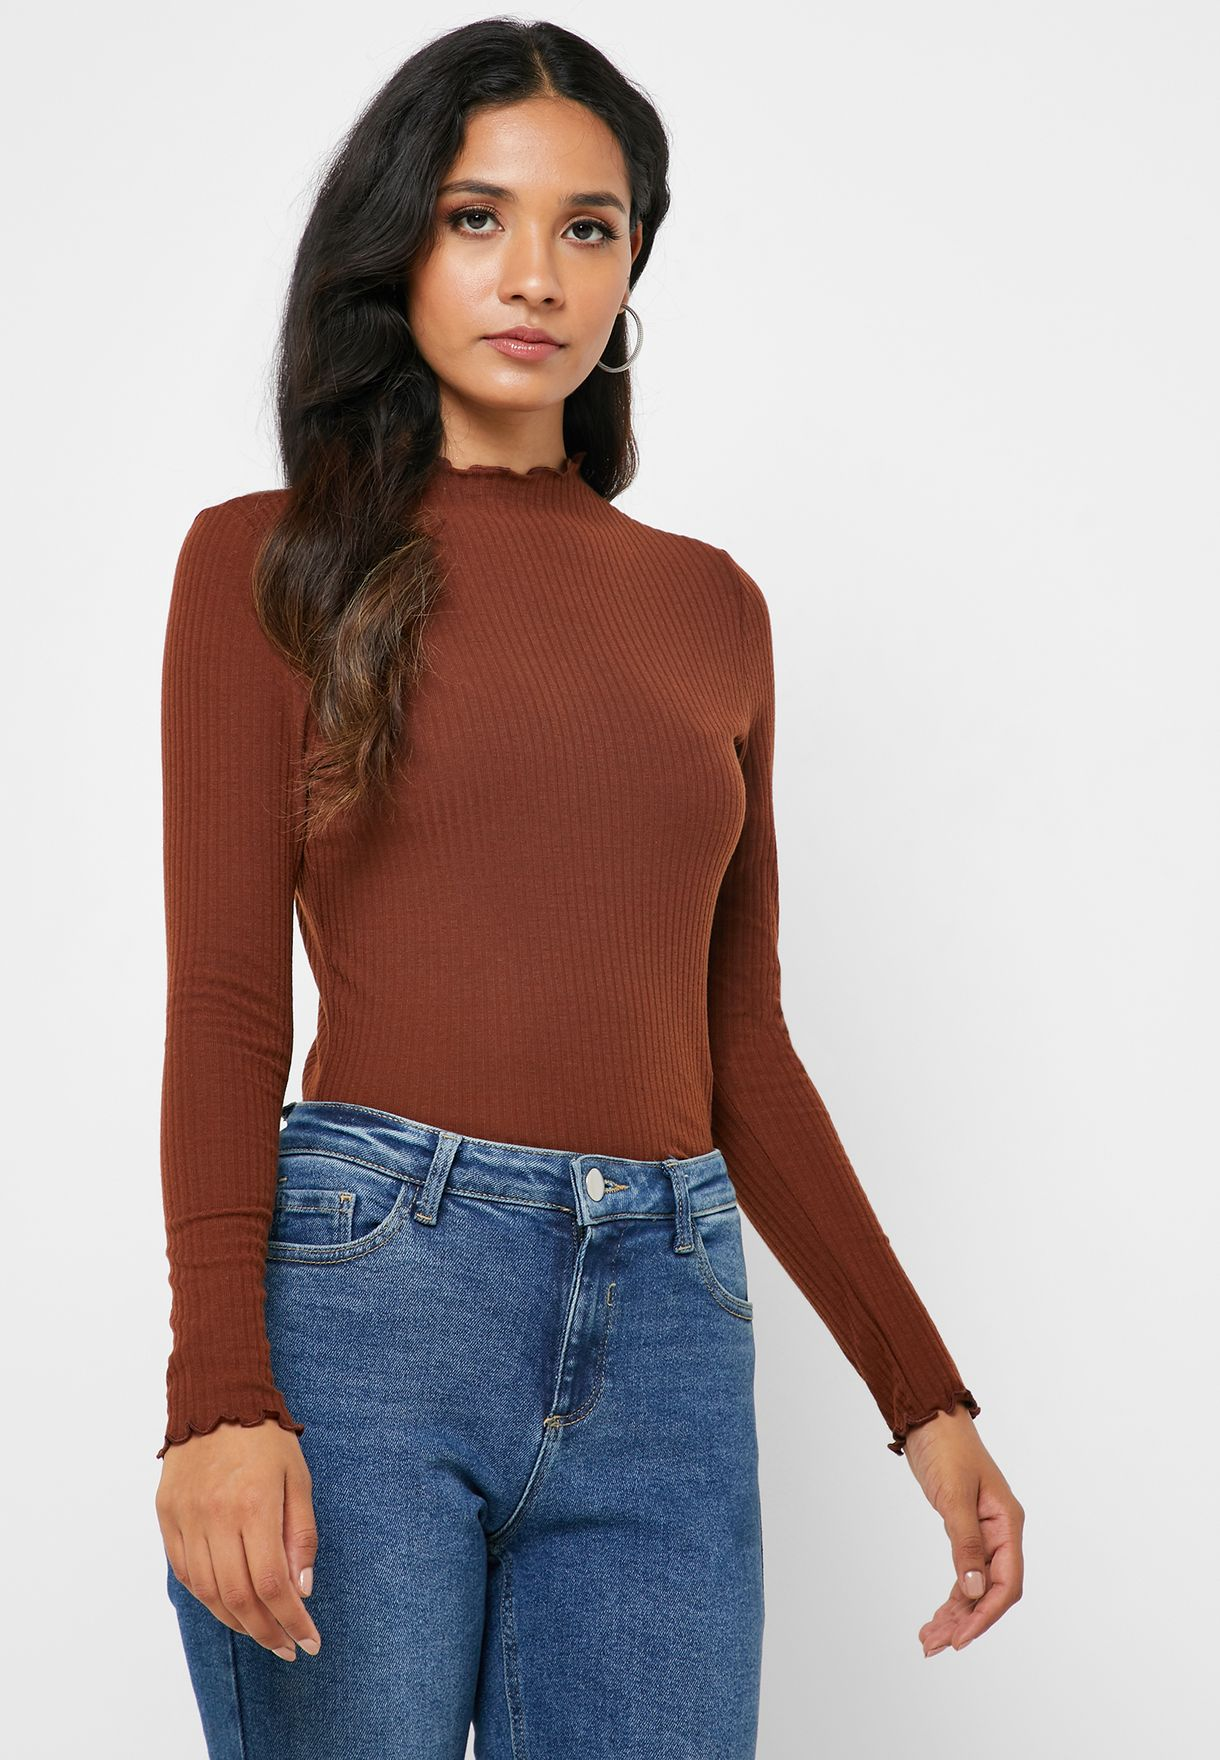 Lettuce Edge High Neck Top